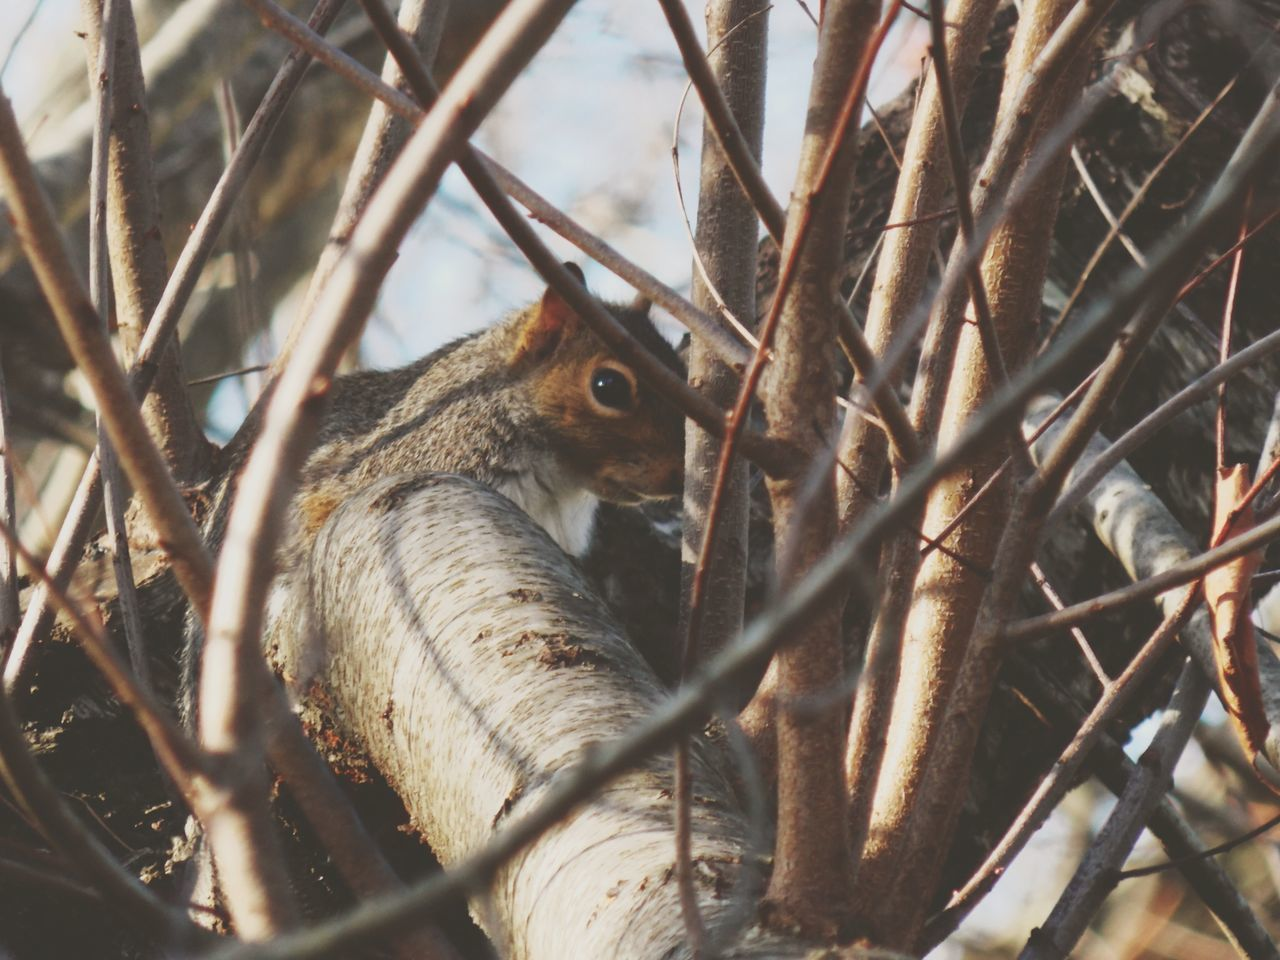 Hello World Taking Photos Check This Out Beautiful Nature From My Point Of View Squirrel Photo Looking For Peanuts Nature_collection Love Squirrels